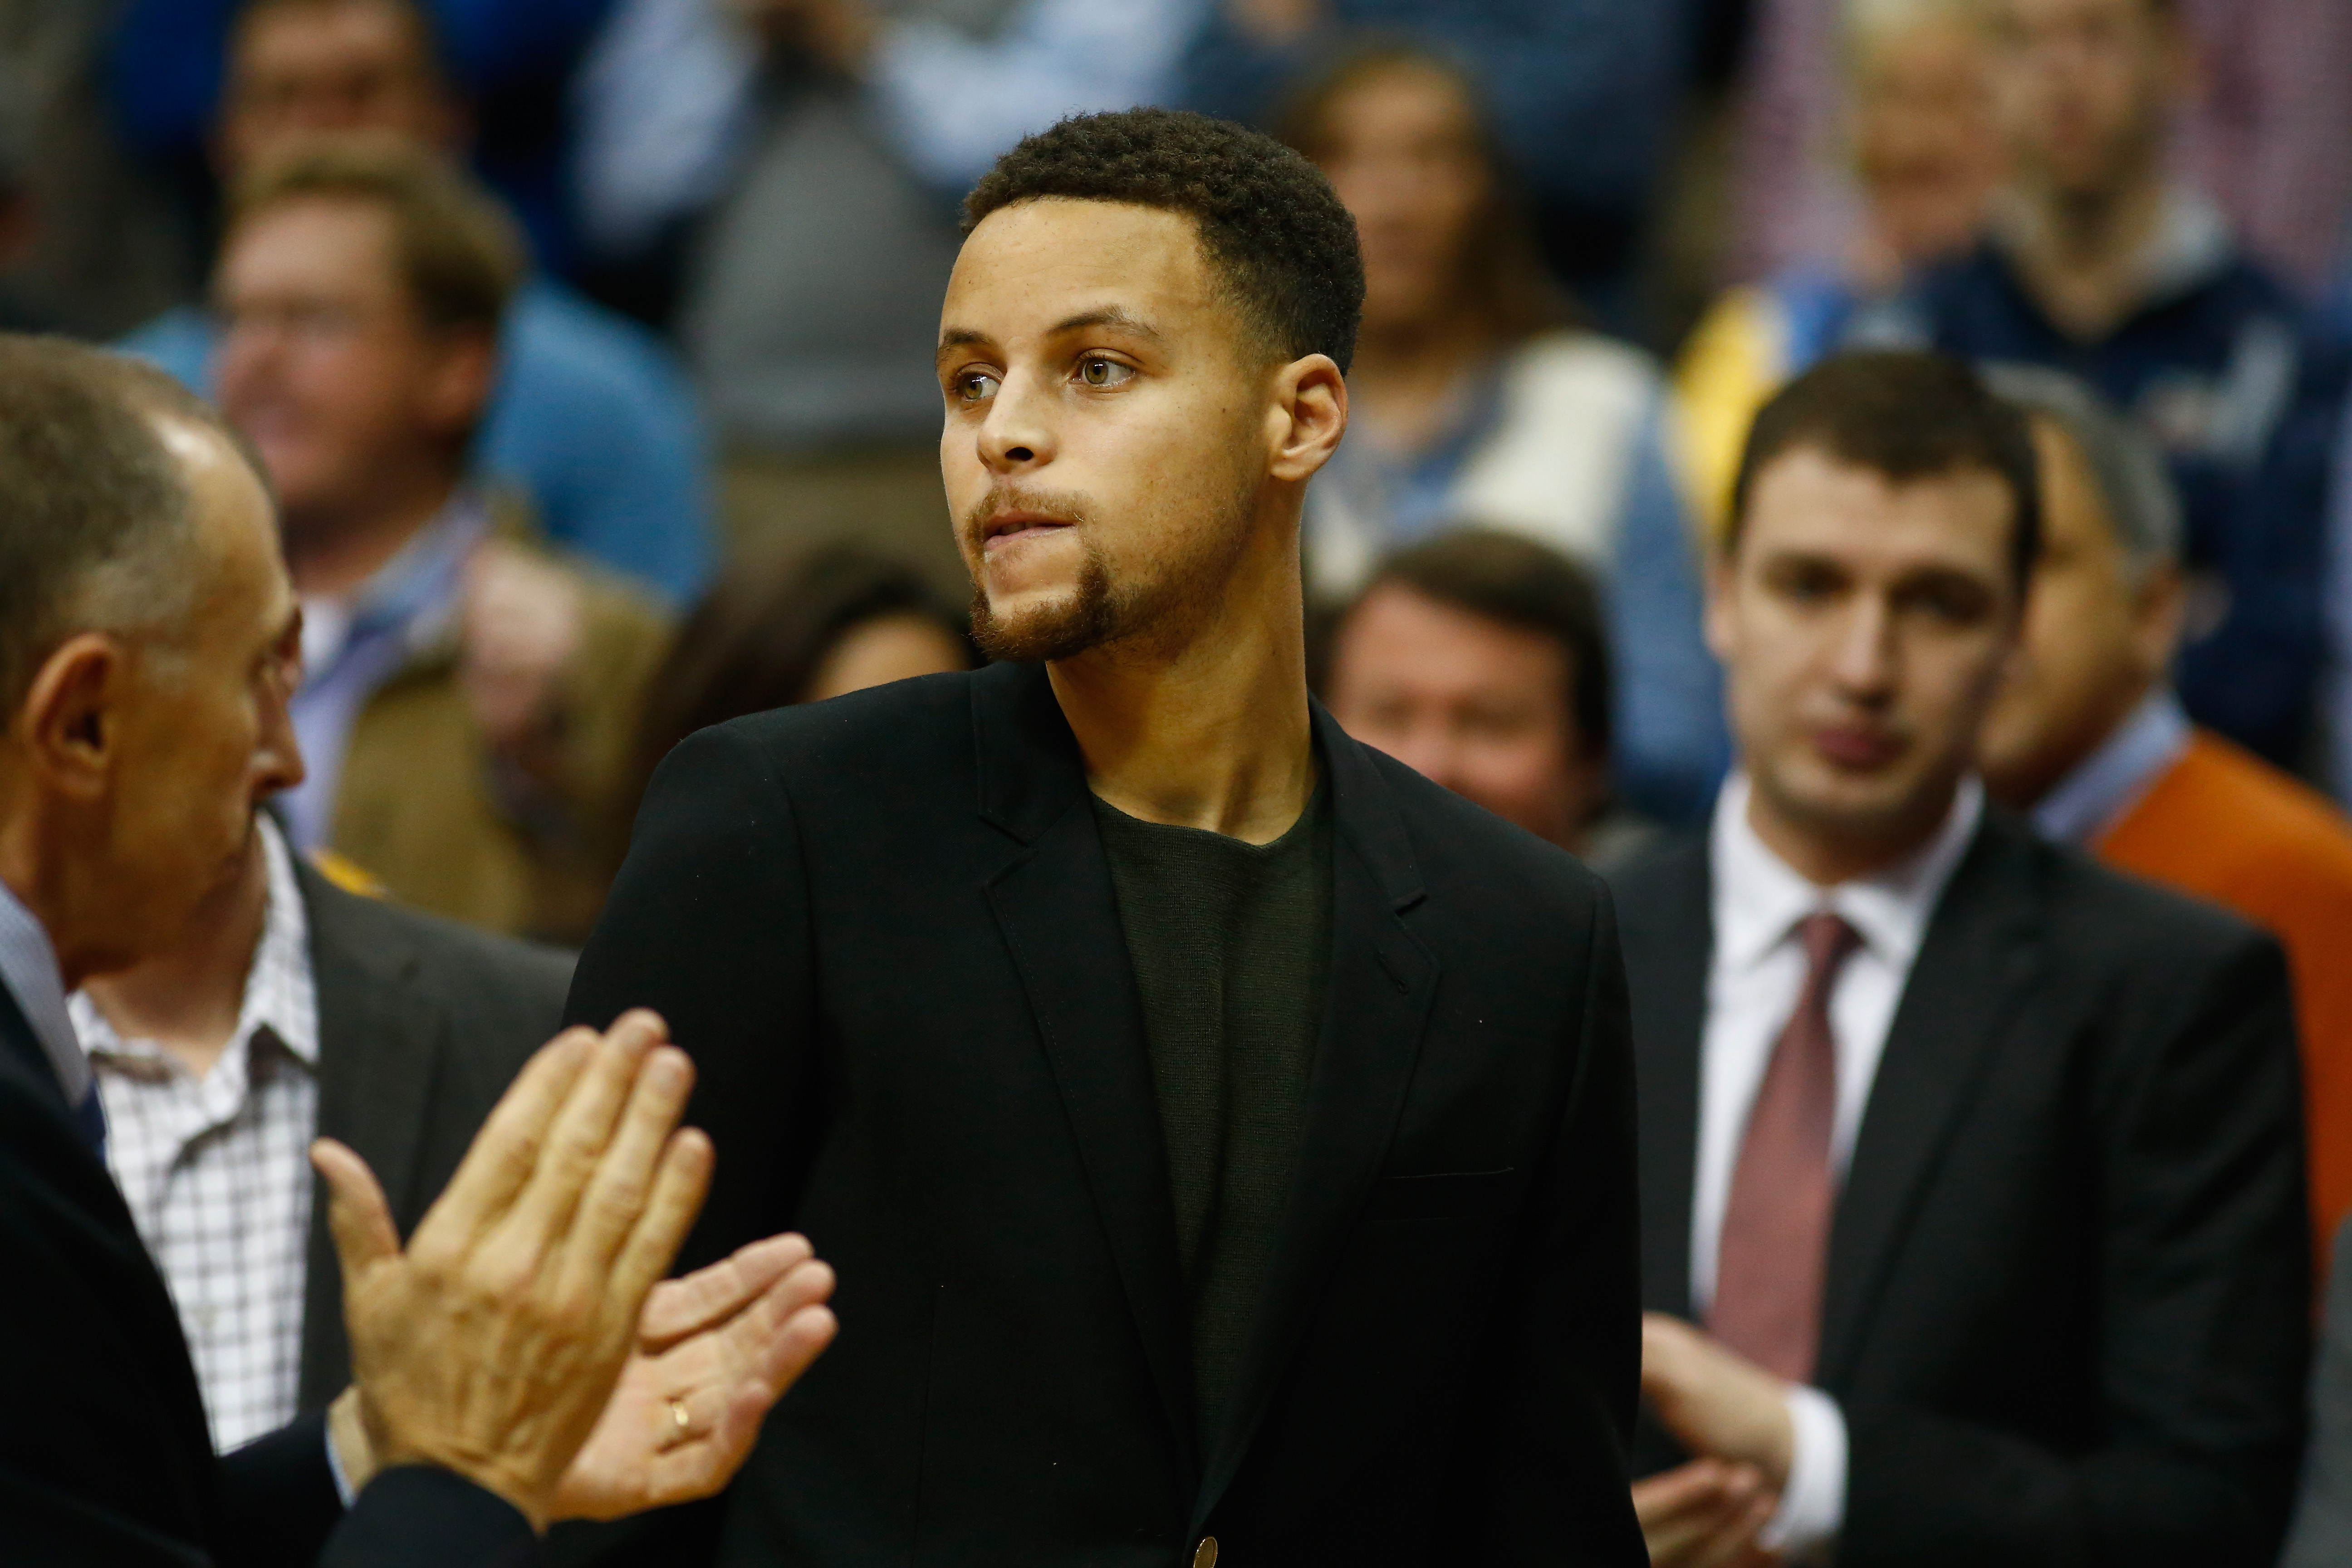 DALLAS, TX - DECEMBER 30:  Stephen Curry #30 of the Golden State Warriors on the bench during a game against the Dallas Mavericks at American Airlines Center on December 30, 2015 in Dallas, Texas.  (Photo by Ronald Martinez/Getty Images)